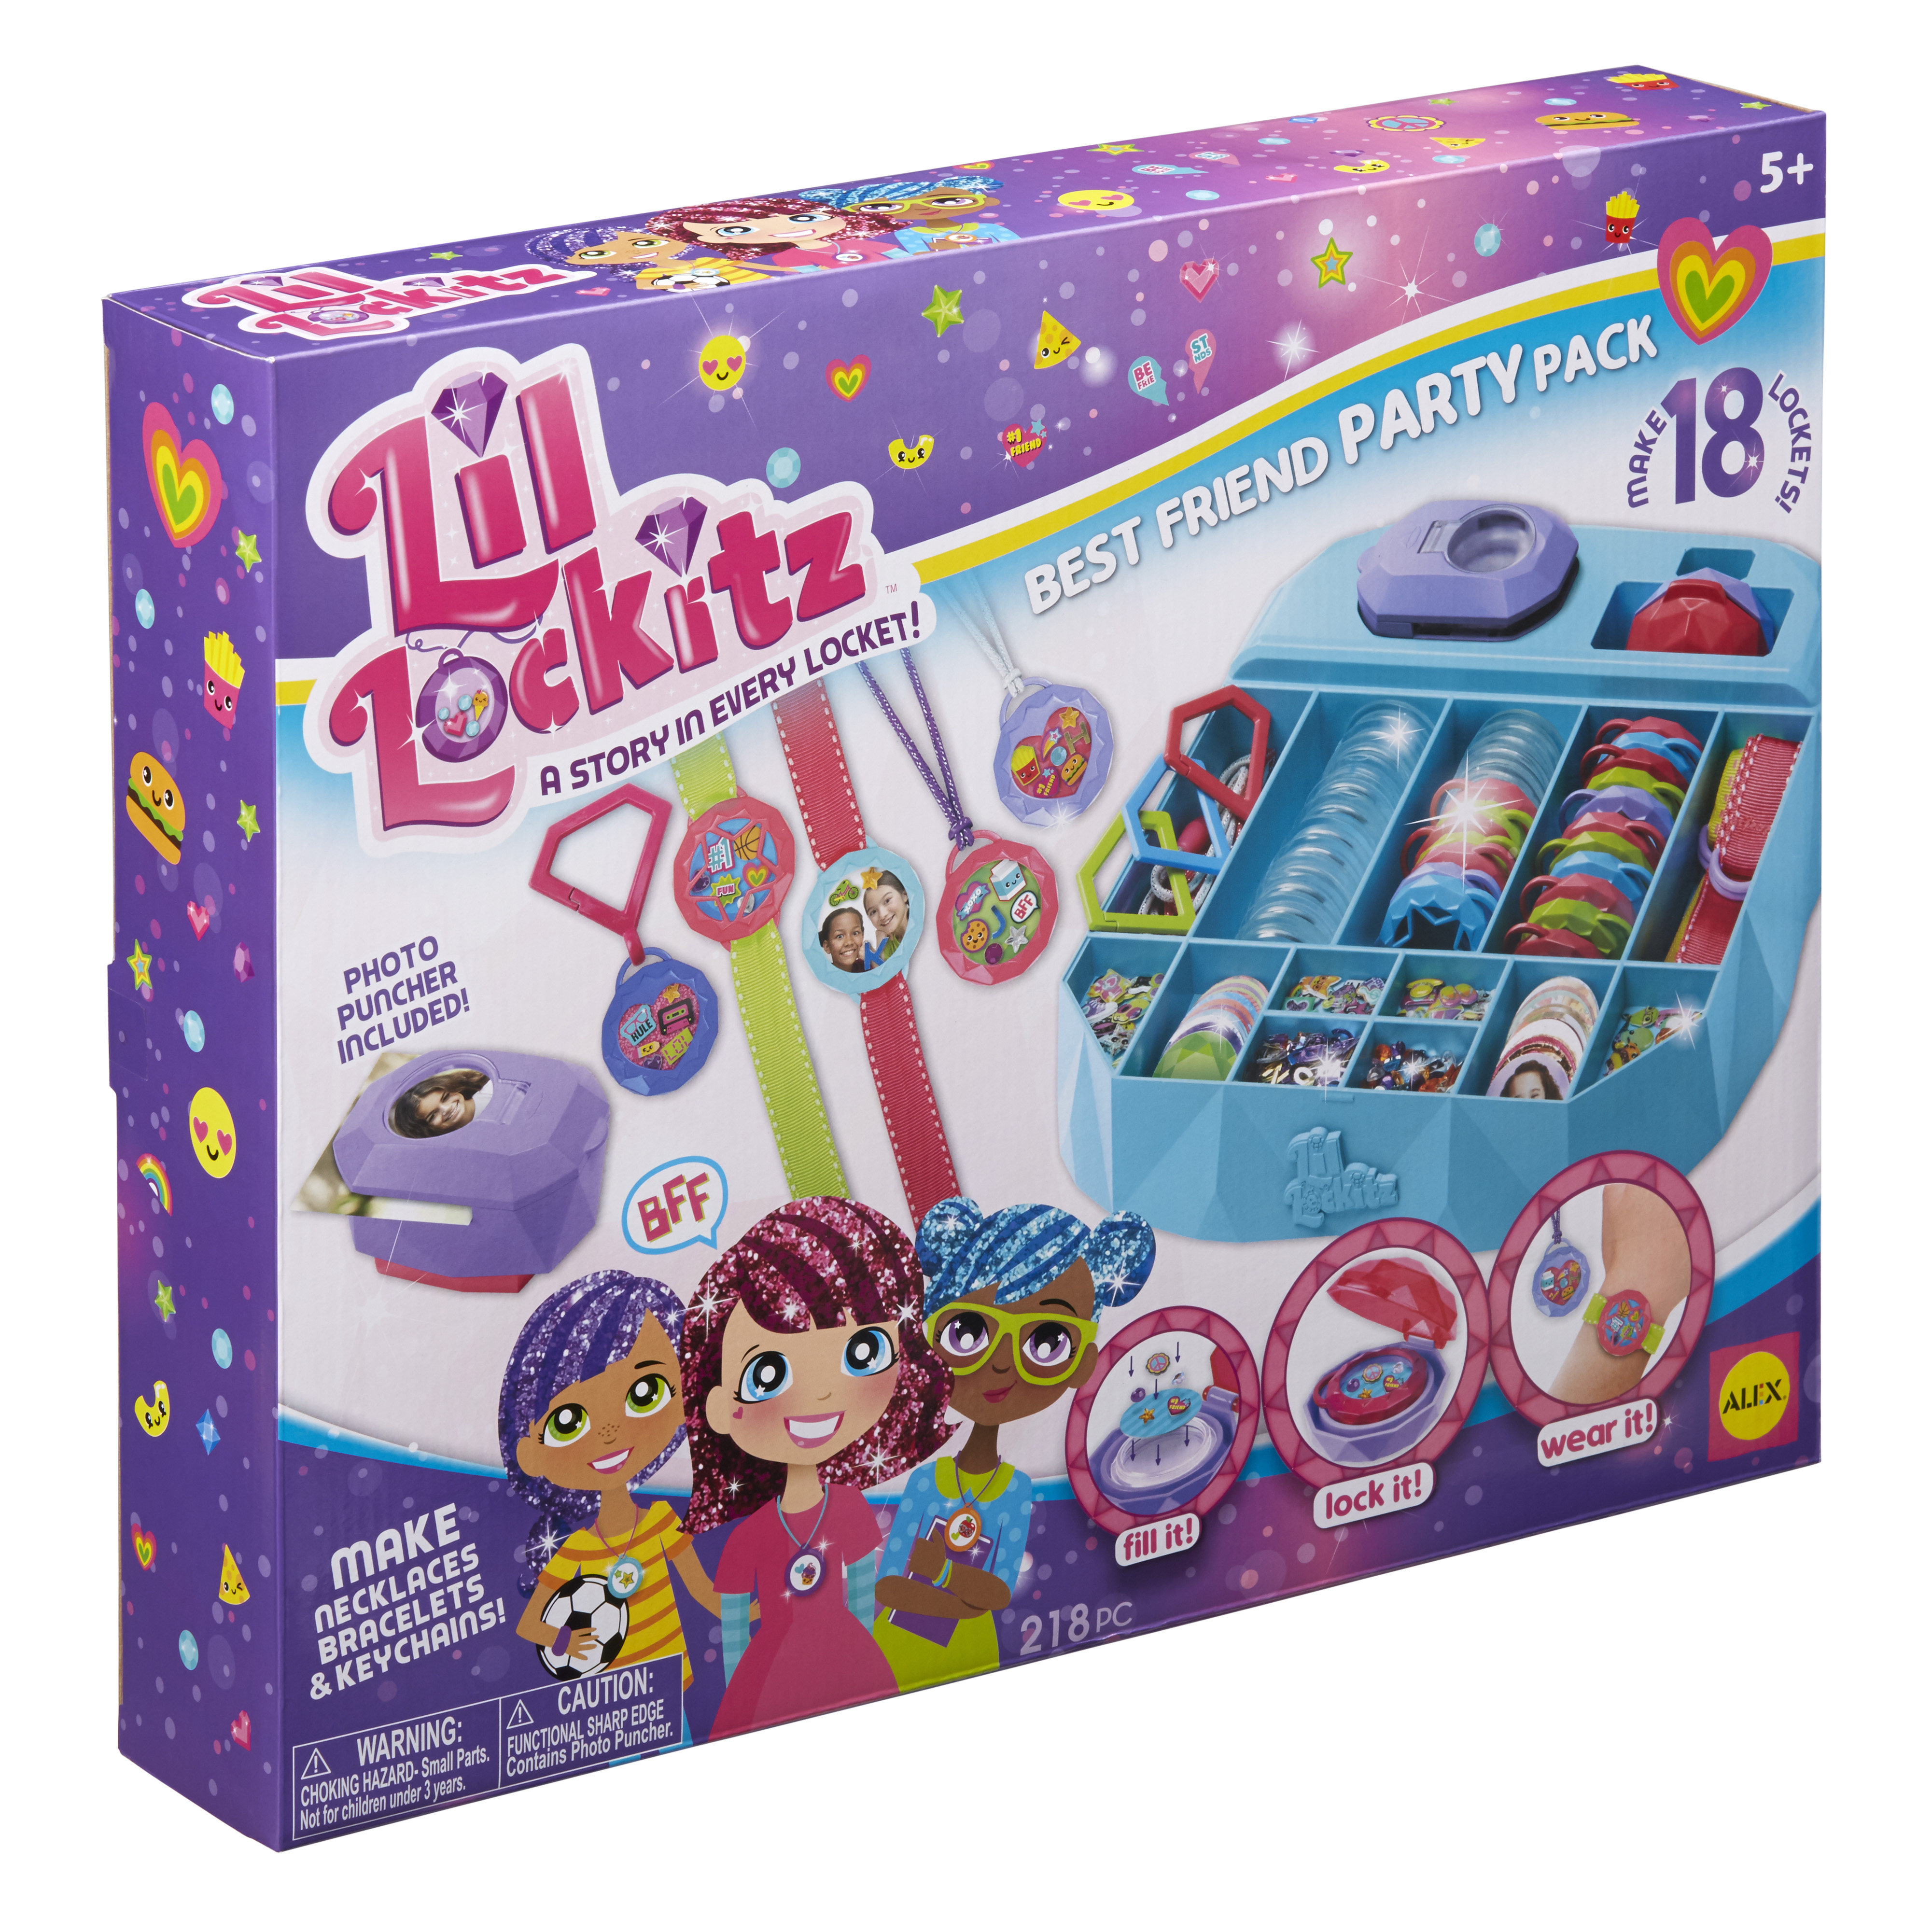 14 Gift Ideas The Best Toys for Kids Age 5 to 8